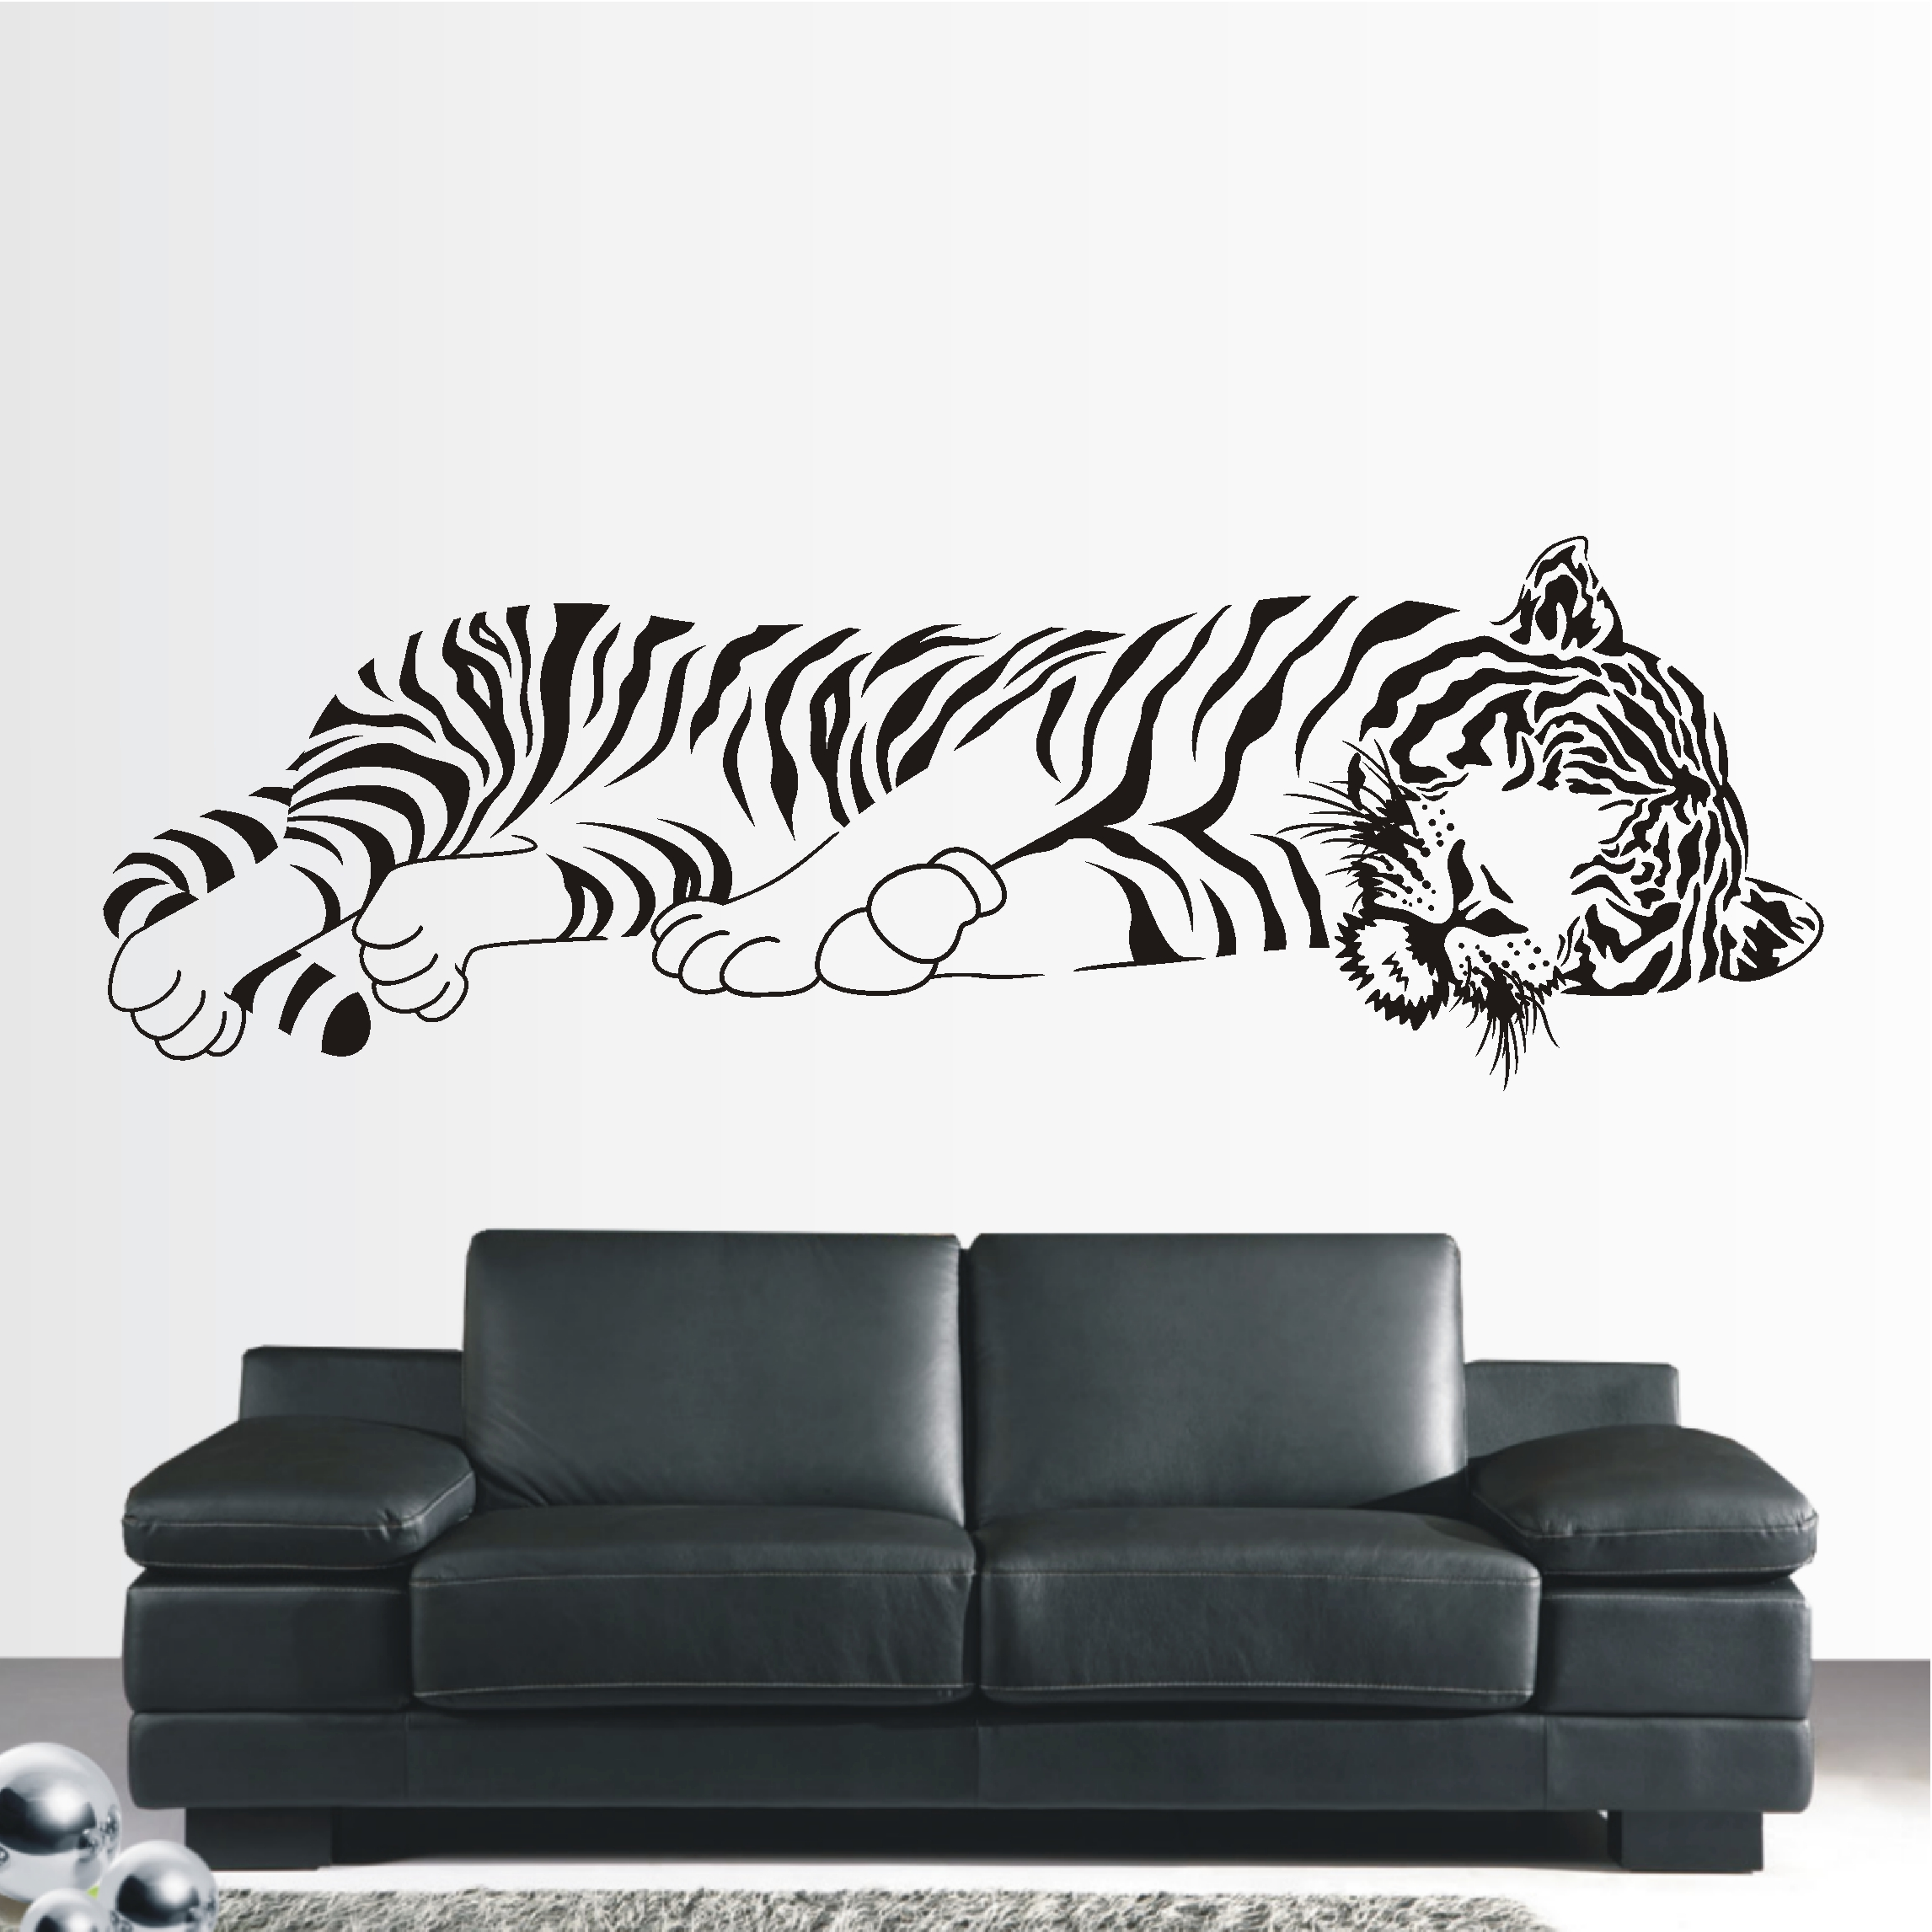 deko shop wandtattoo tiger liegend xxl deko shop. Black Bedroom Furniture Sets. Home Design Ideas